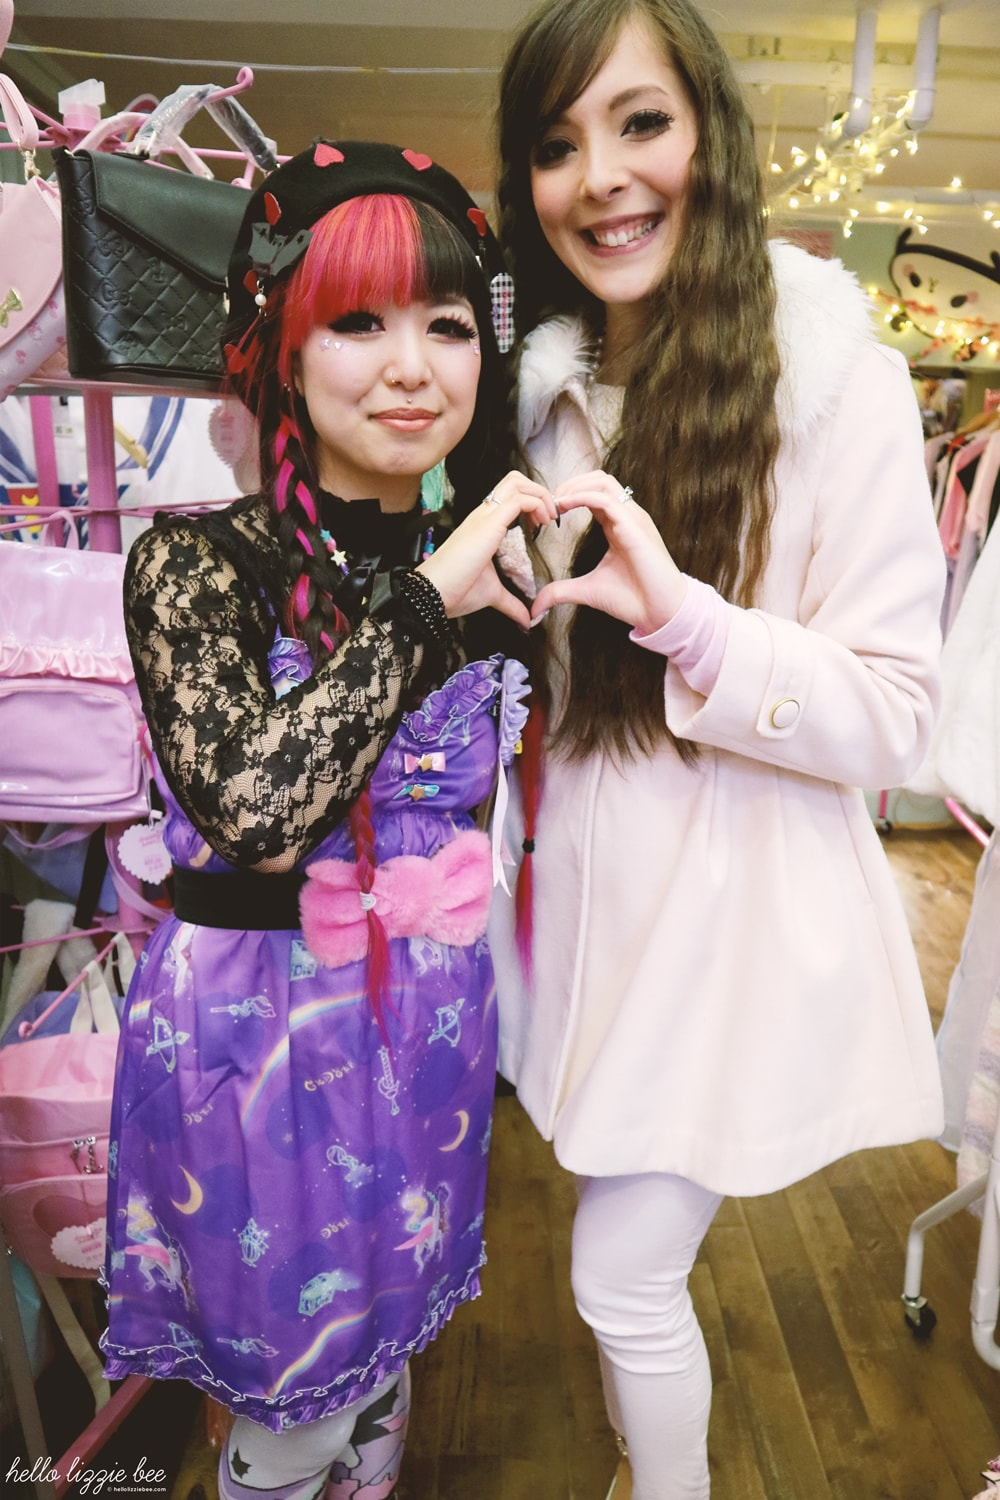 kawaii fashion, shop staff, dreamy bows, wai-yi